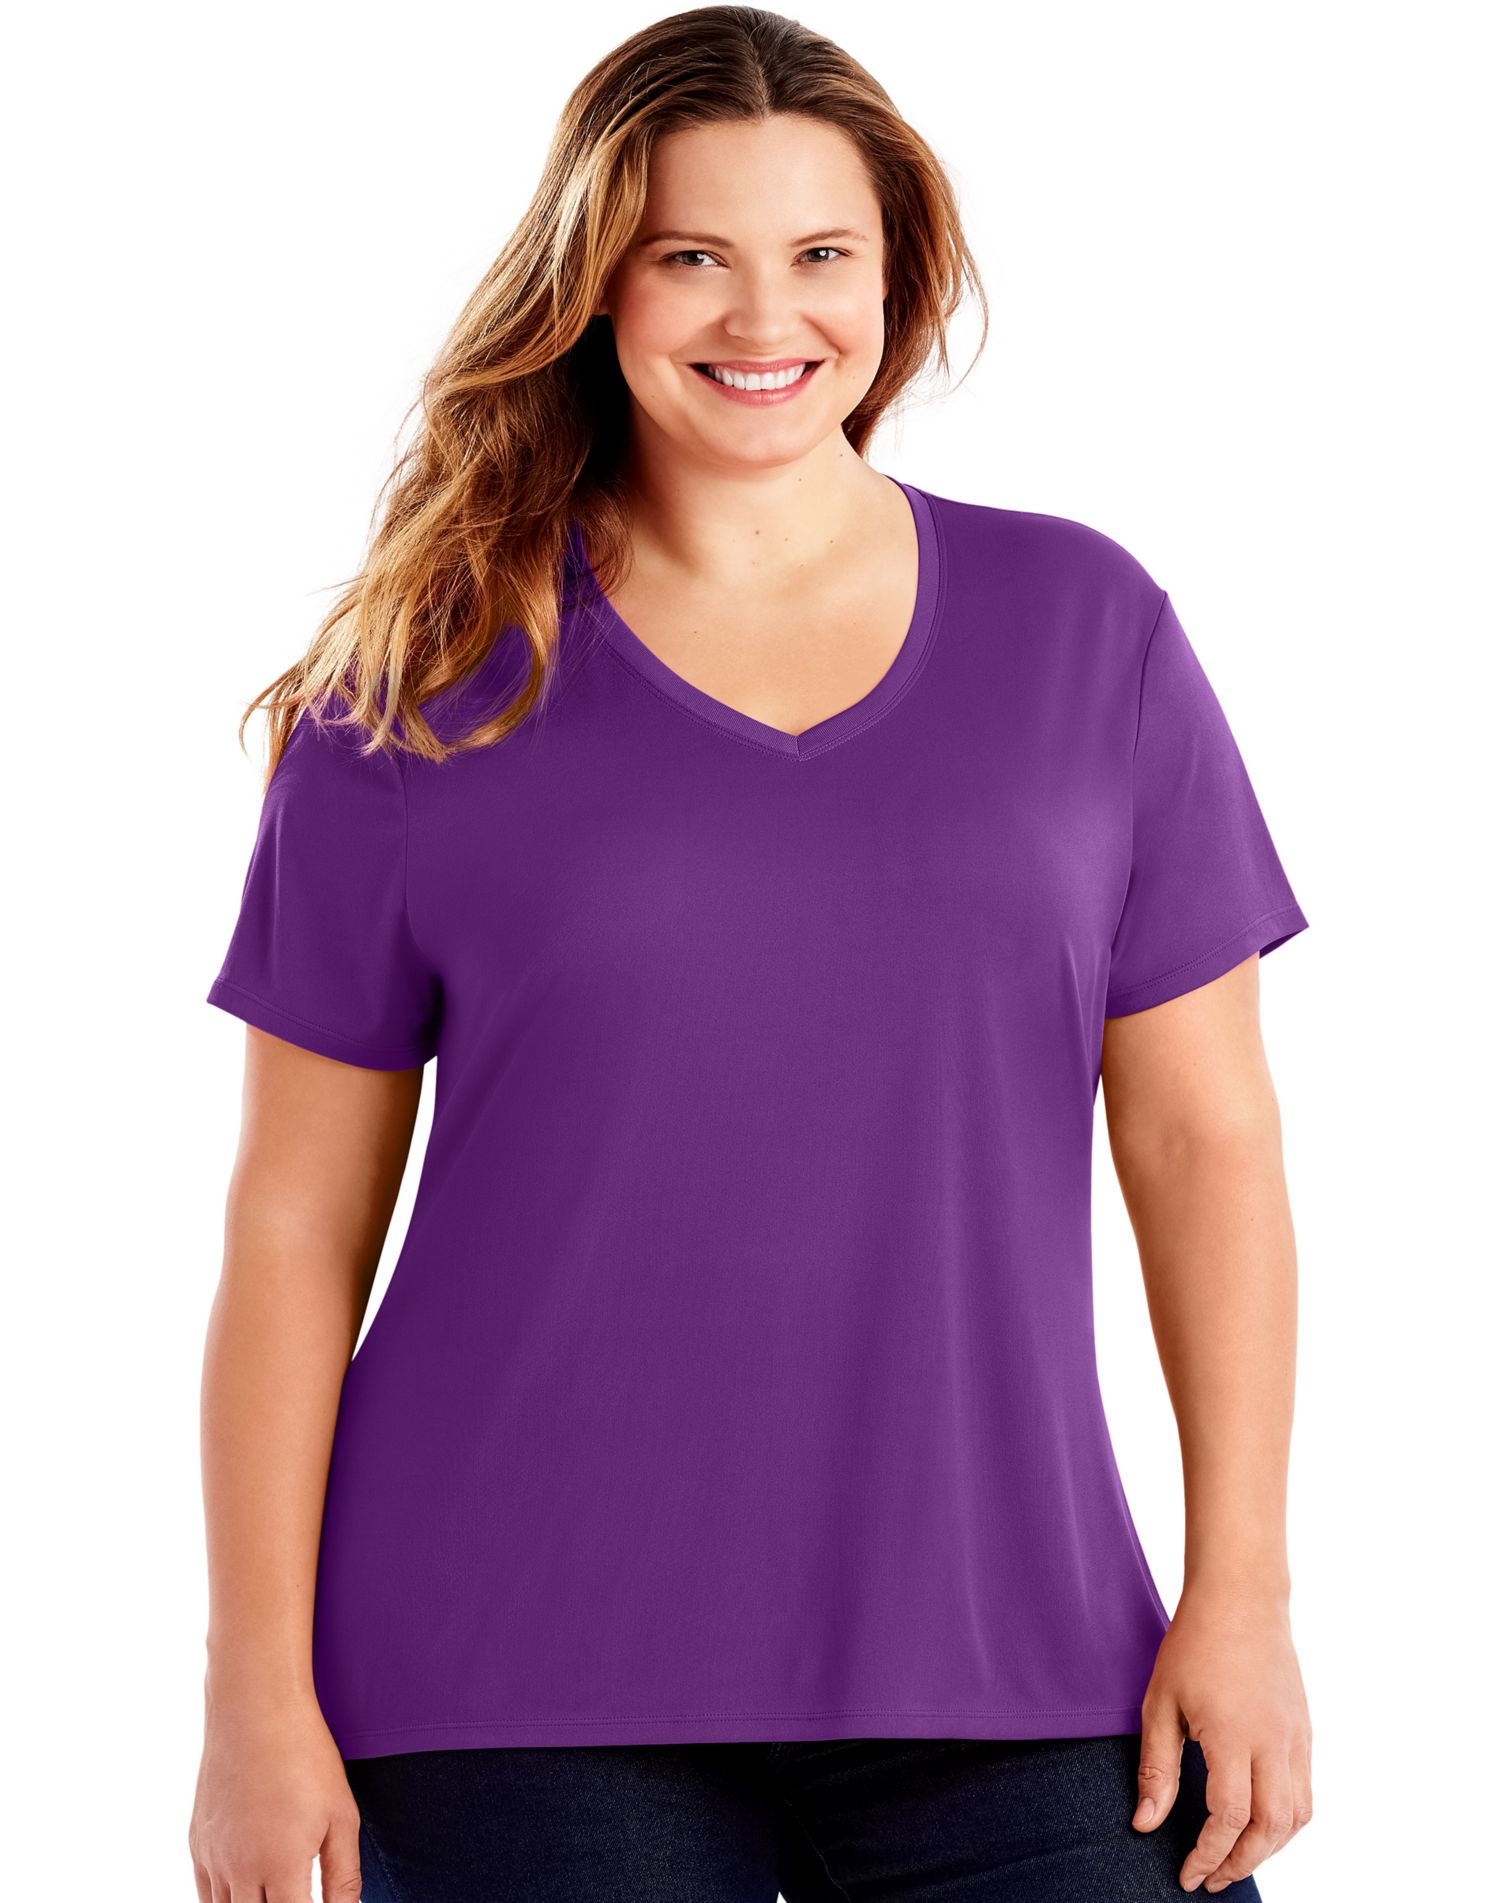 758f77bcc87 Just My Size Womens Cool DRI Short-Sleeve V-Neck Tee